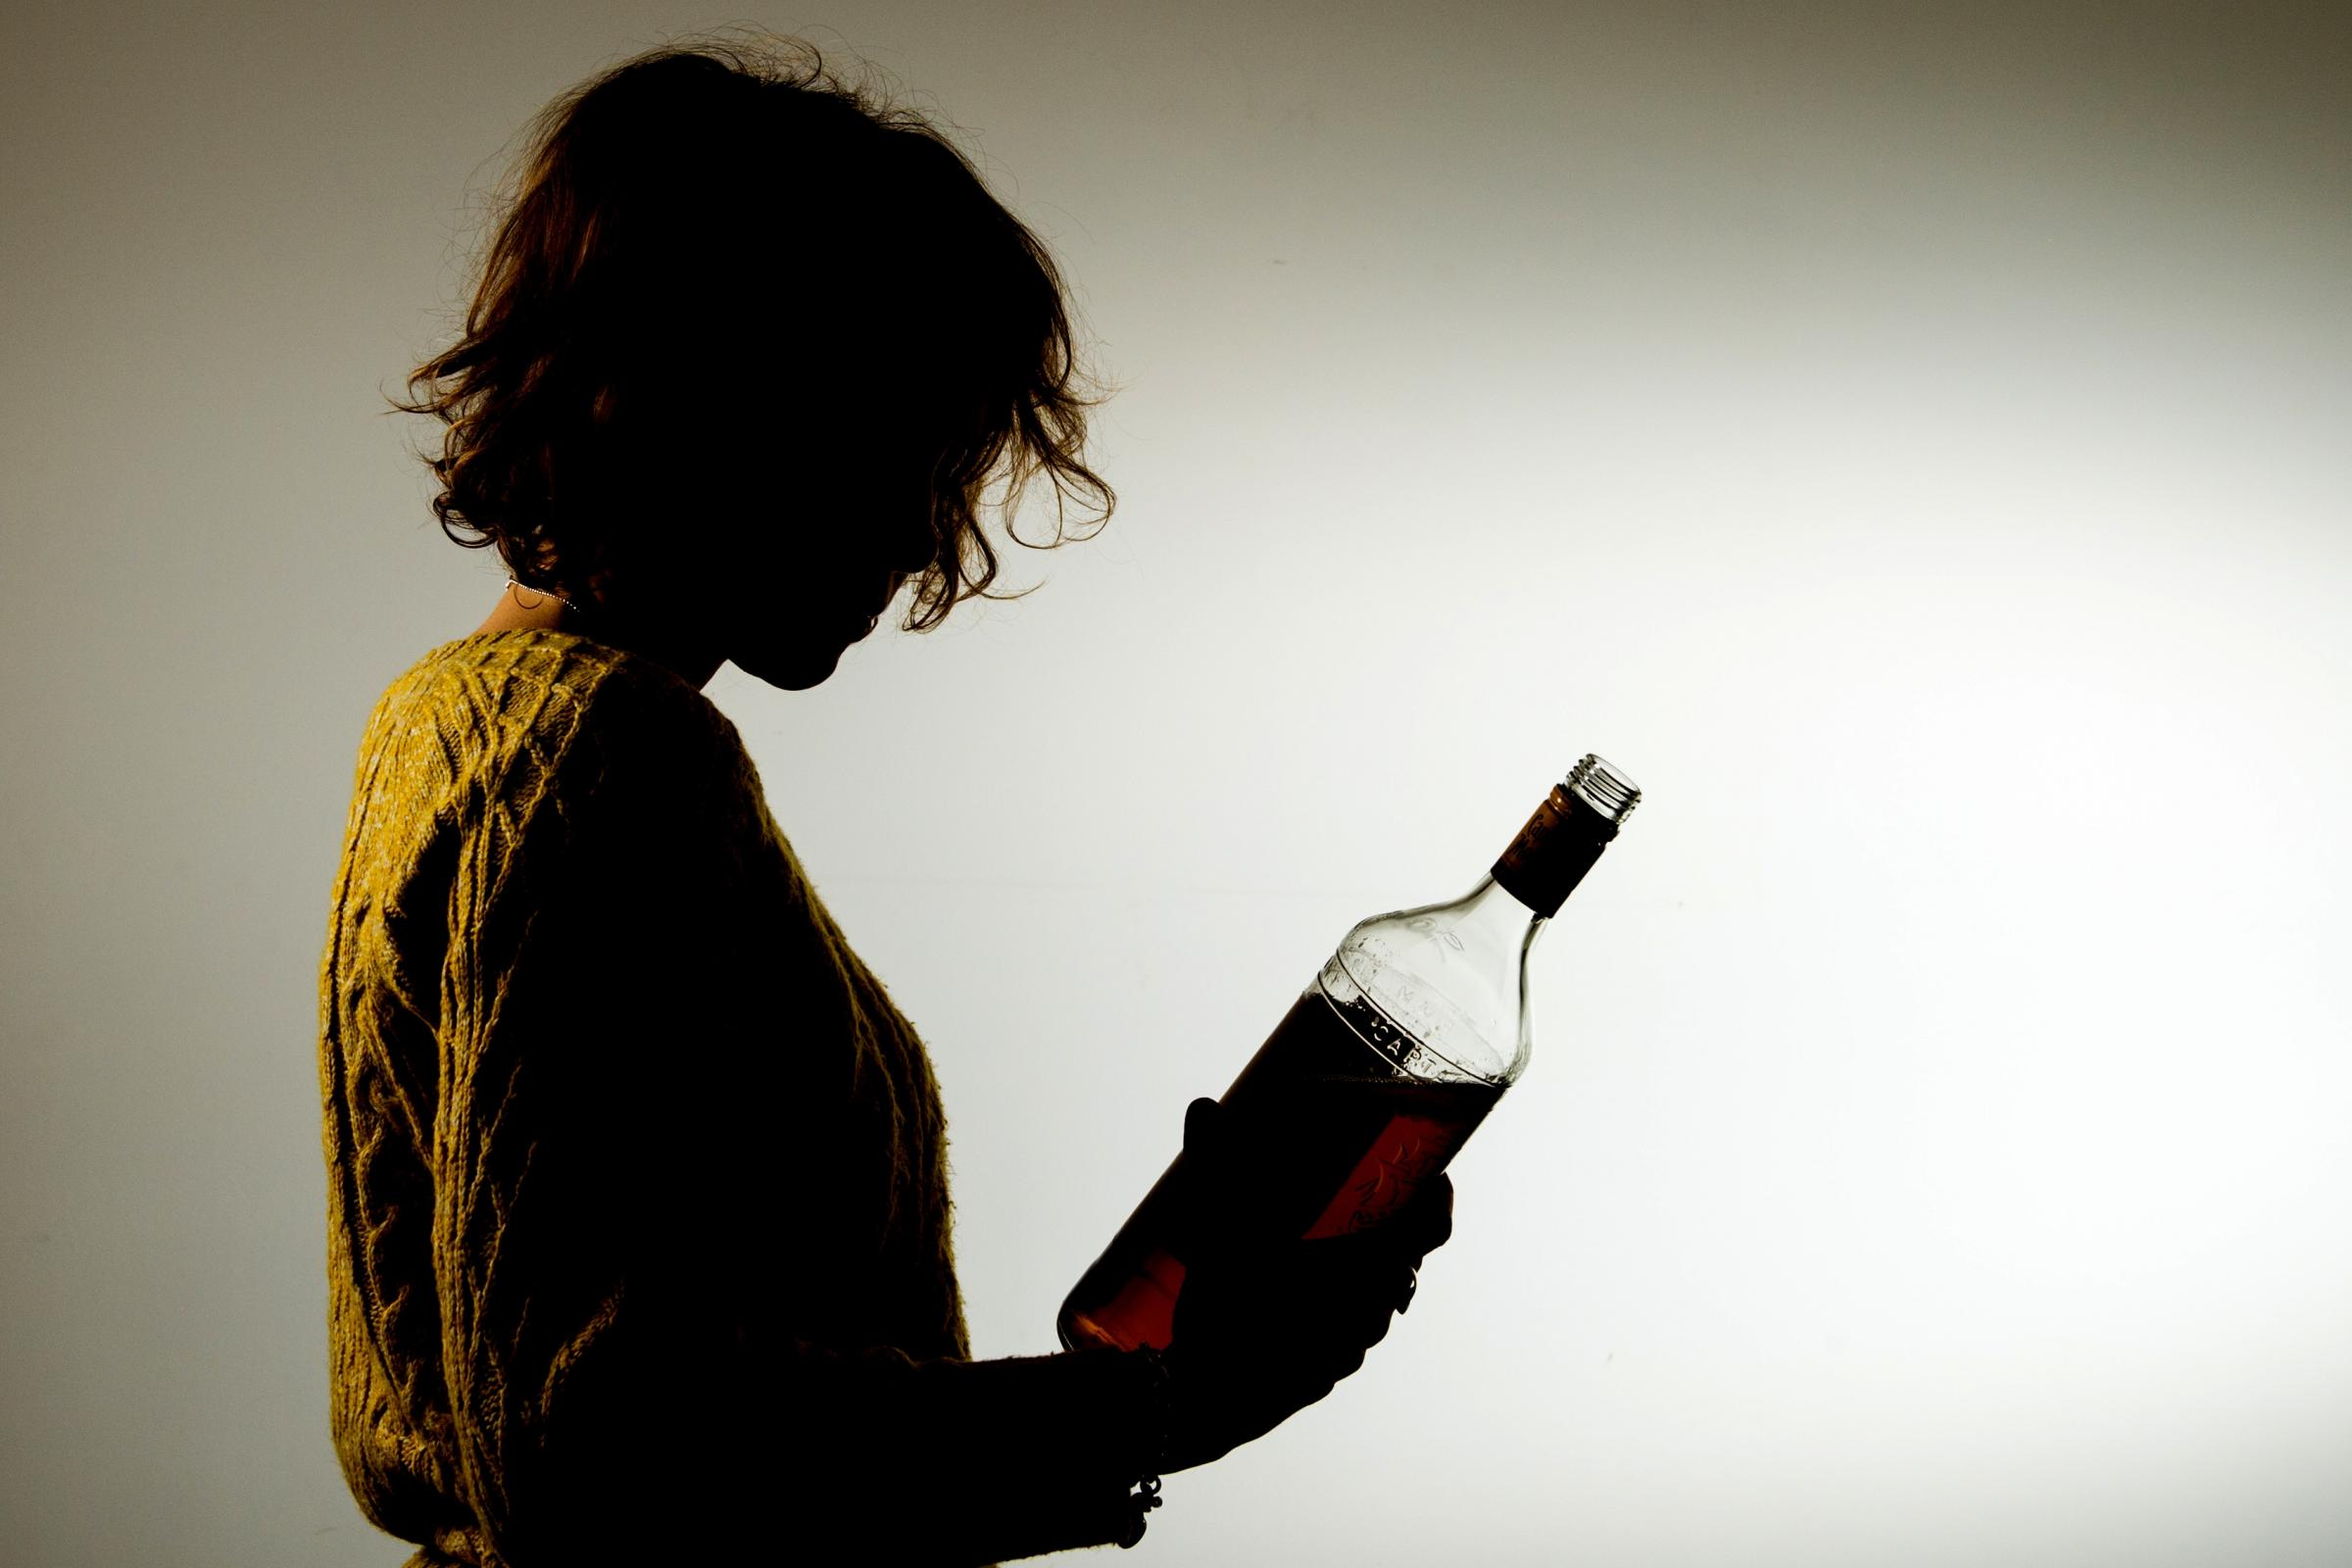 Women with bottle of alcohol